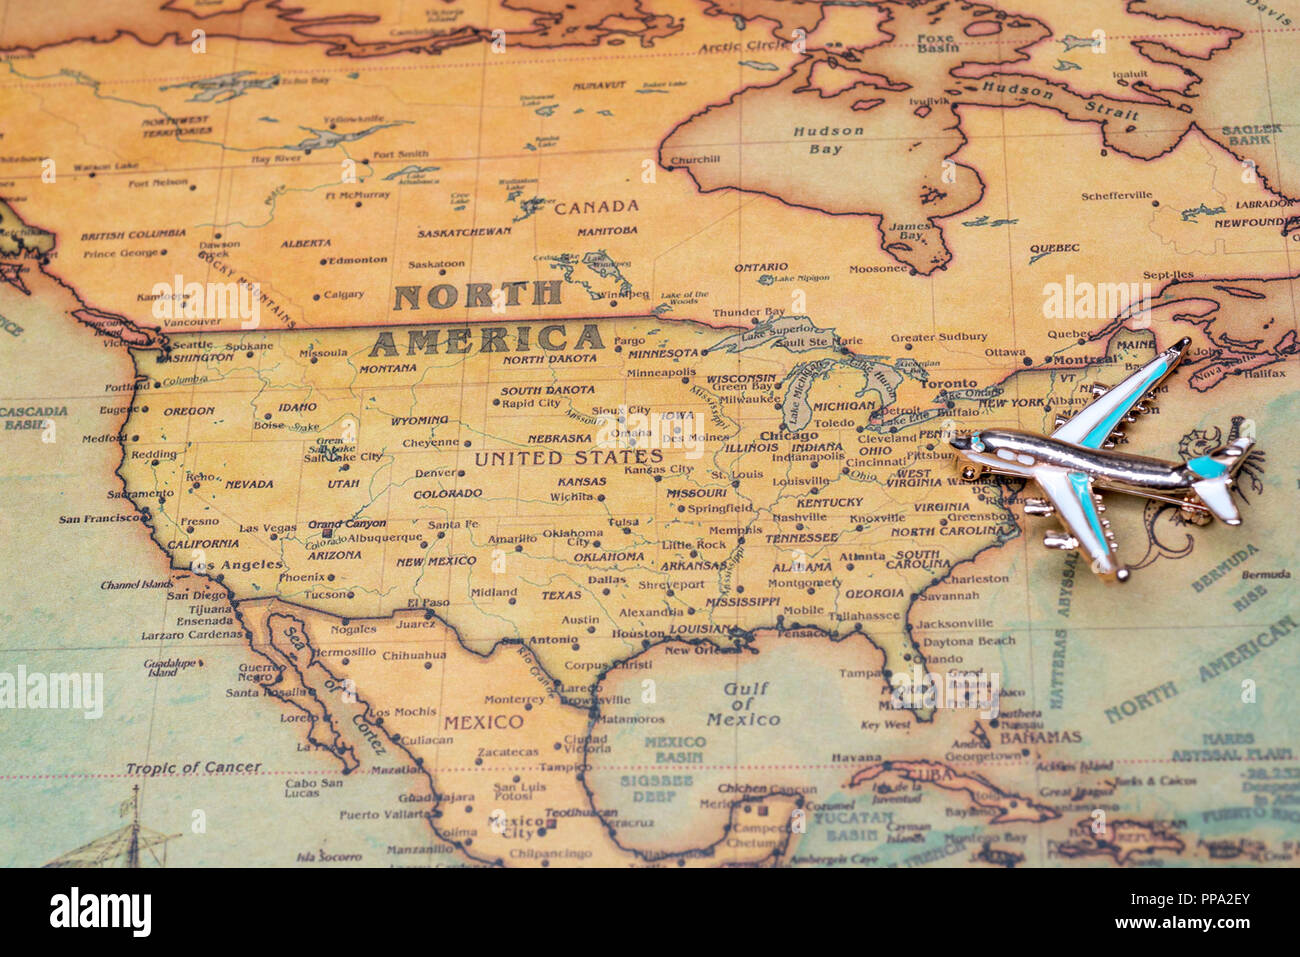 Airplane over a map of North America close-up. Toy airplane on the map background. - Stock Image